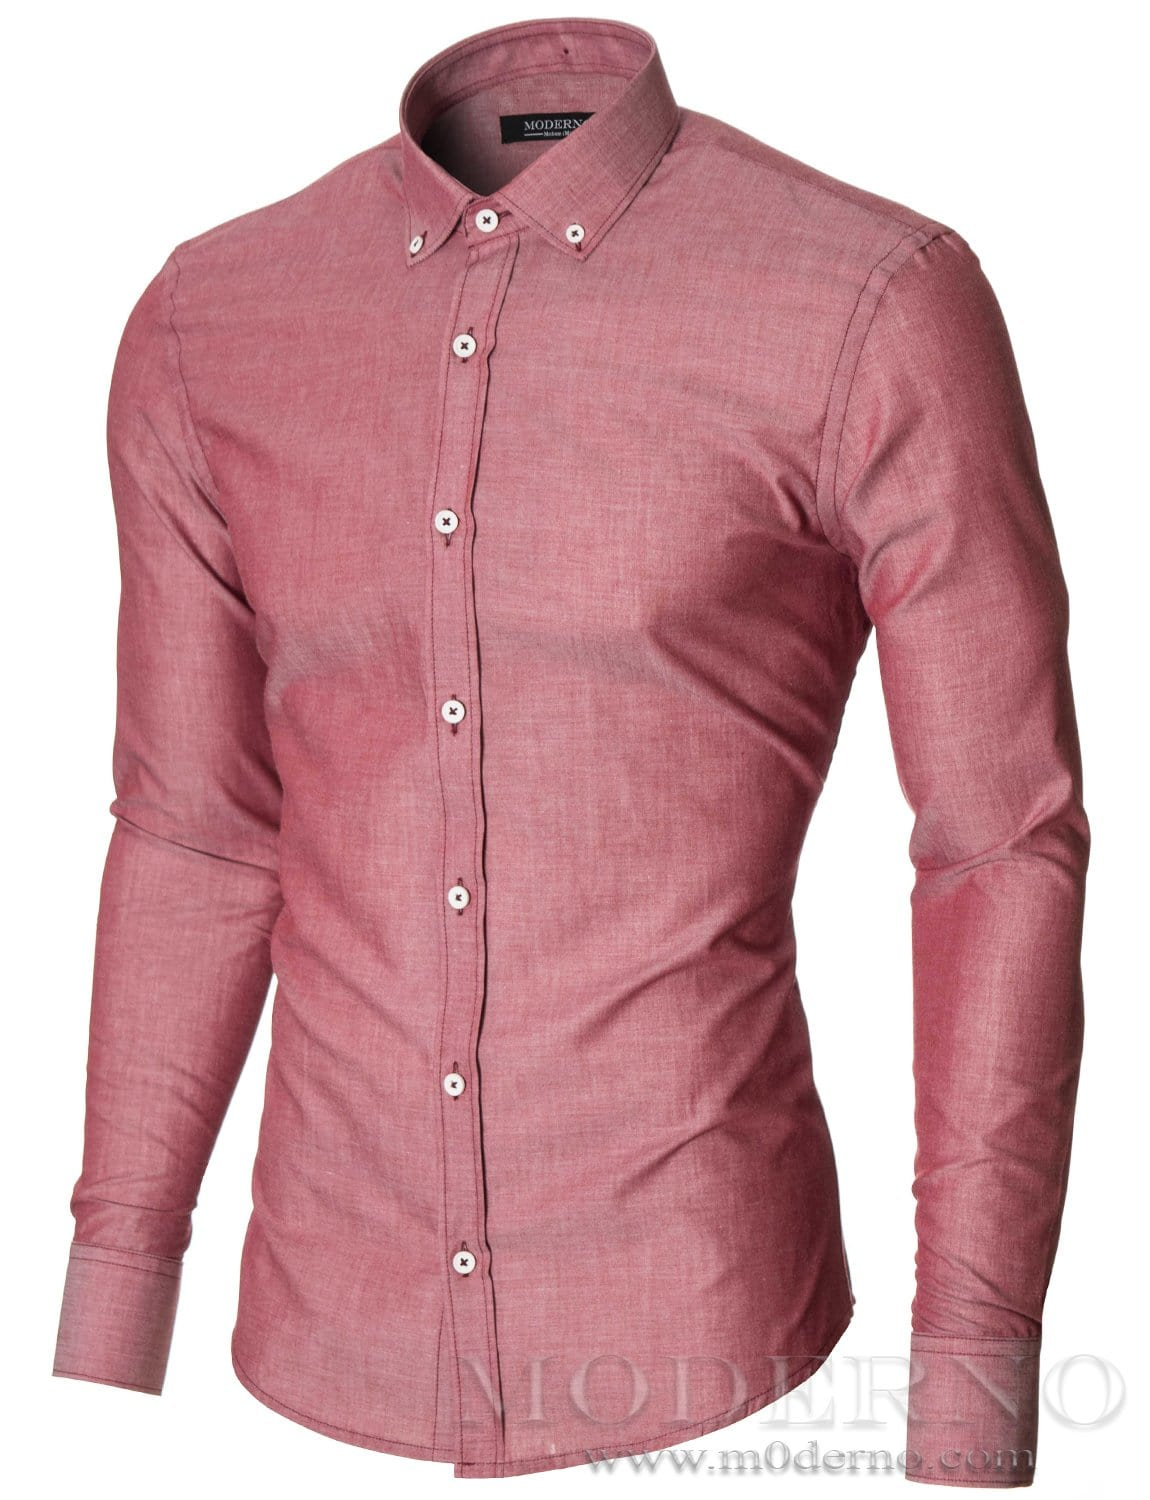 Red and White Men's Dress Shirt